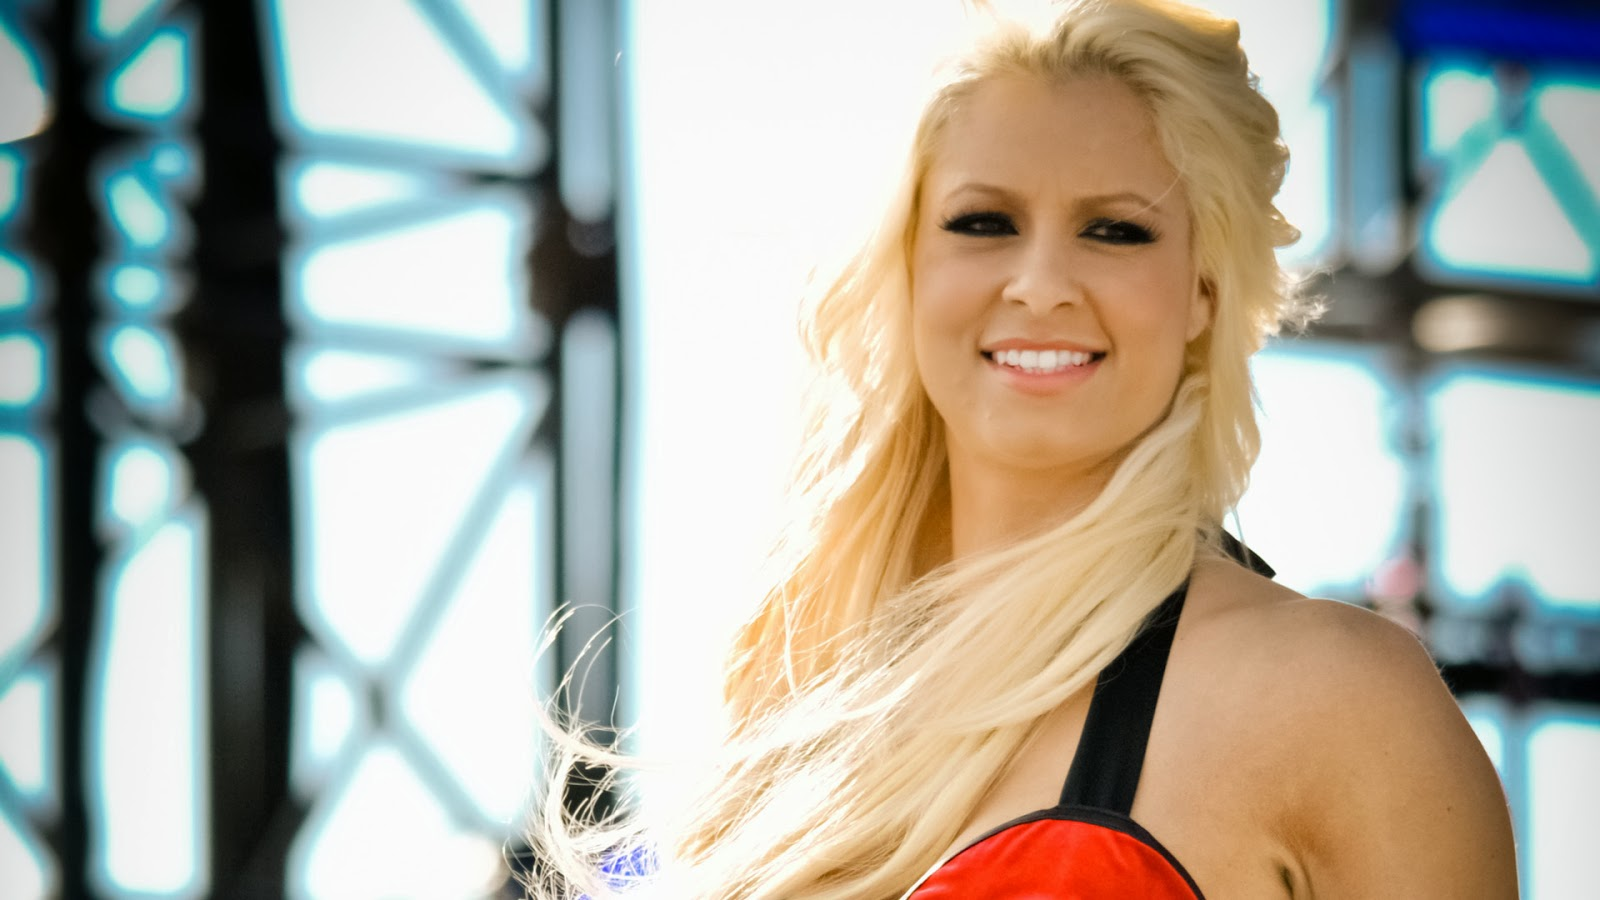 Wwe hot a maryse ouellet full hd wallpapers